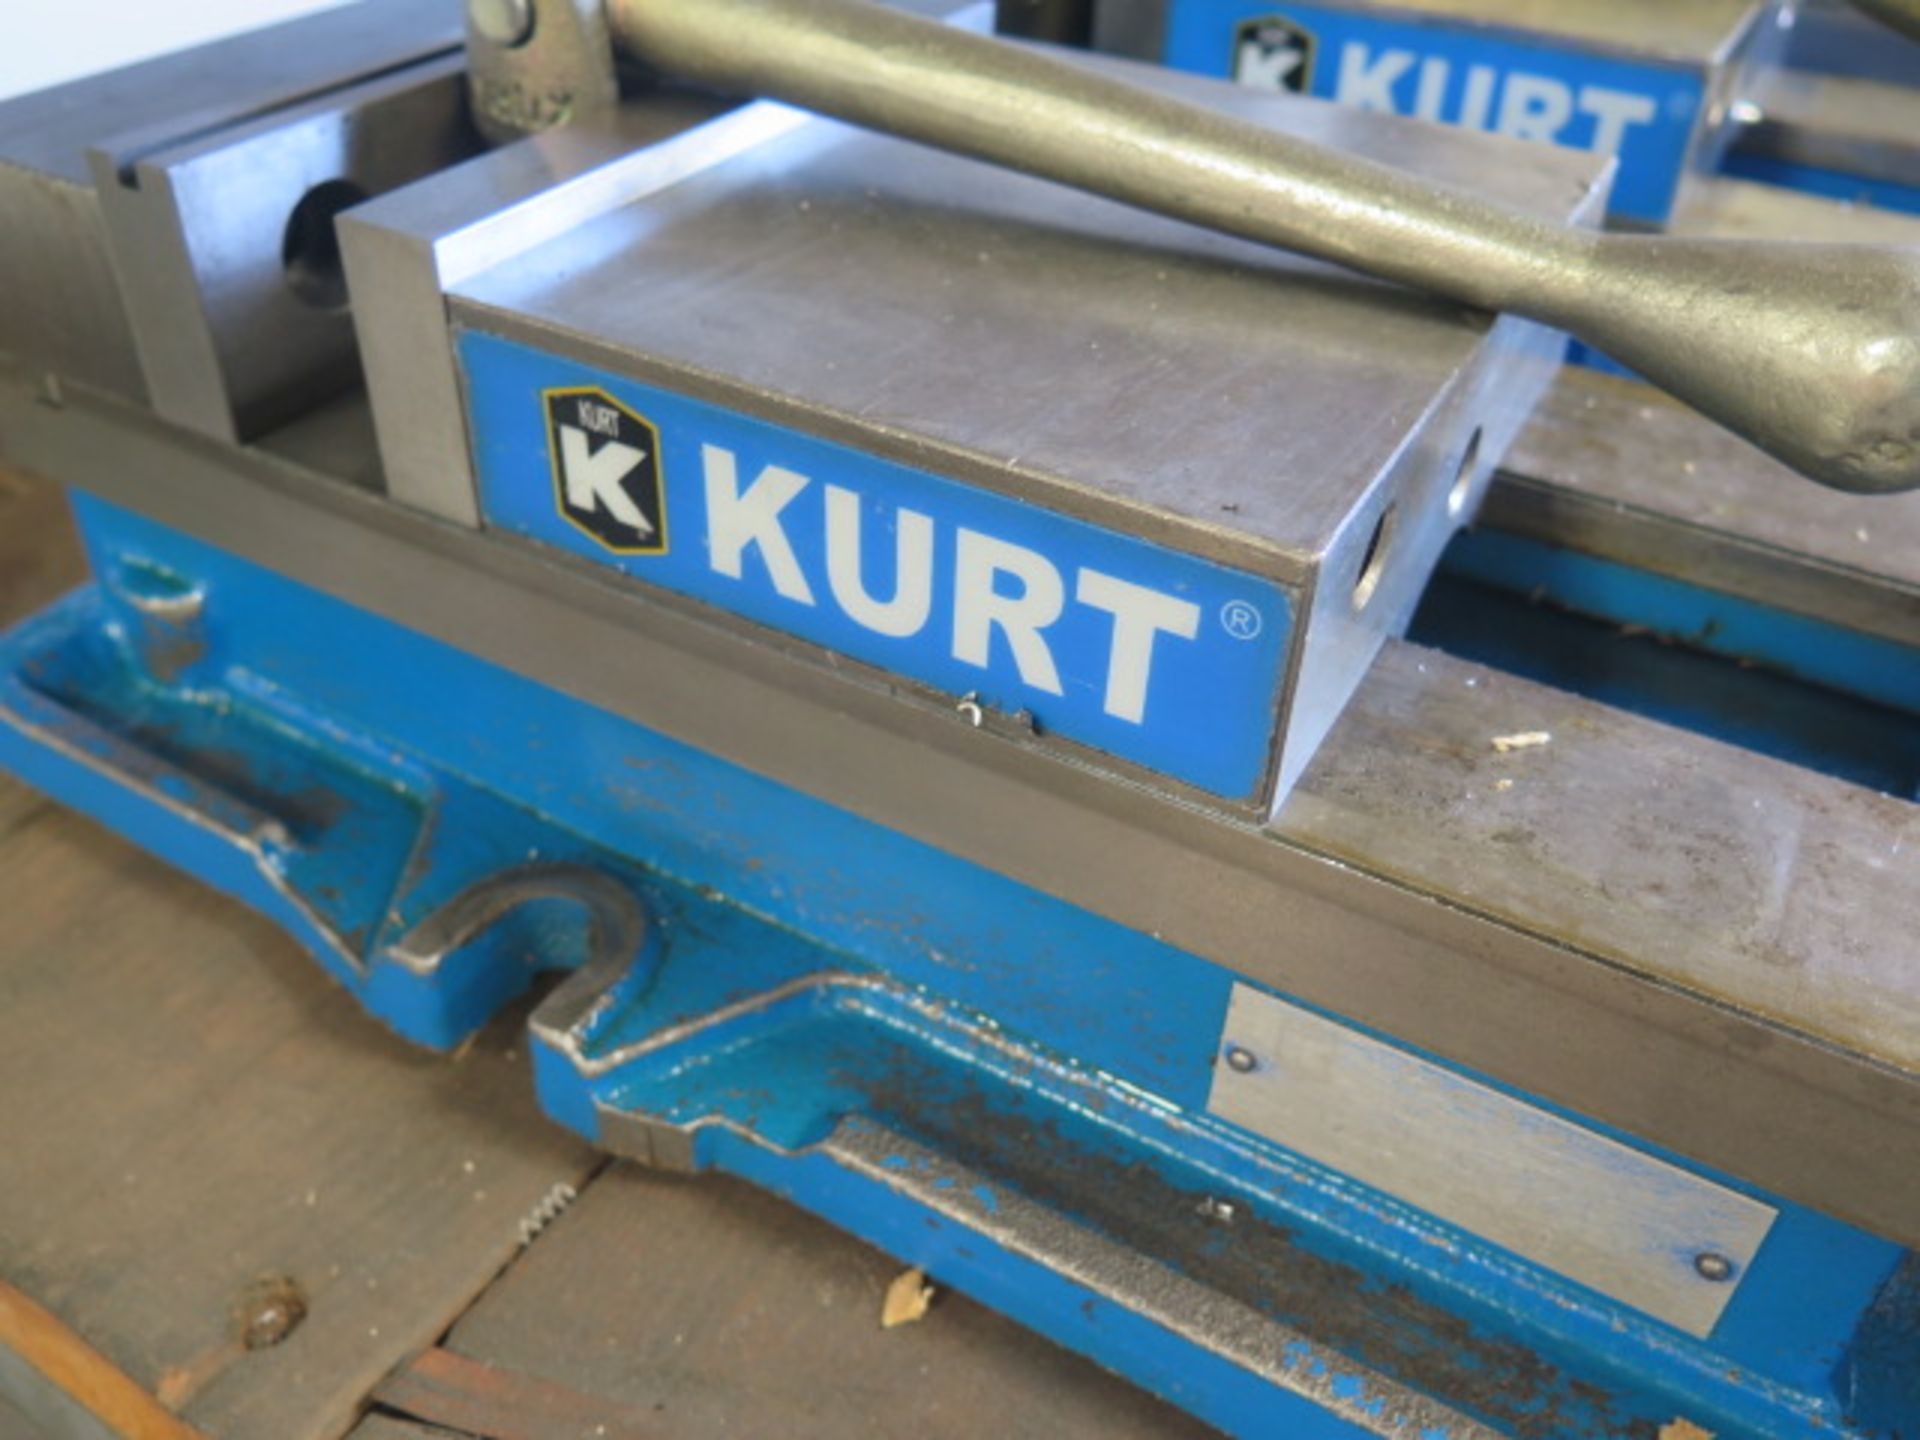 """Kurt D688 6"""" Angle-Lock Vise (SOLD AS-IS - NO WARRANTY) - Image 3 of 3"""